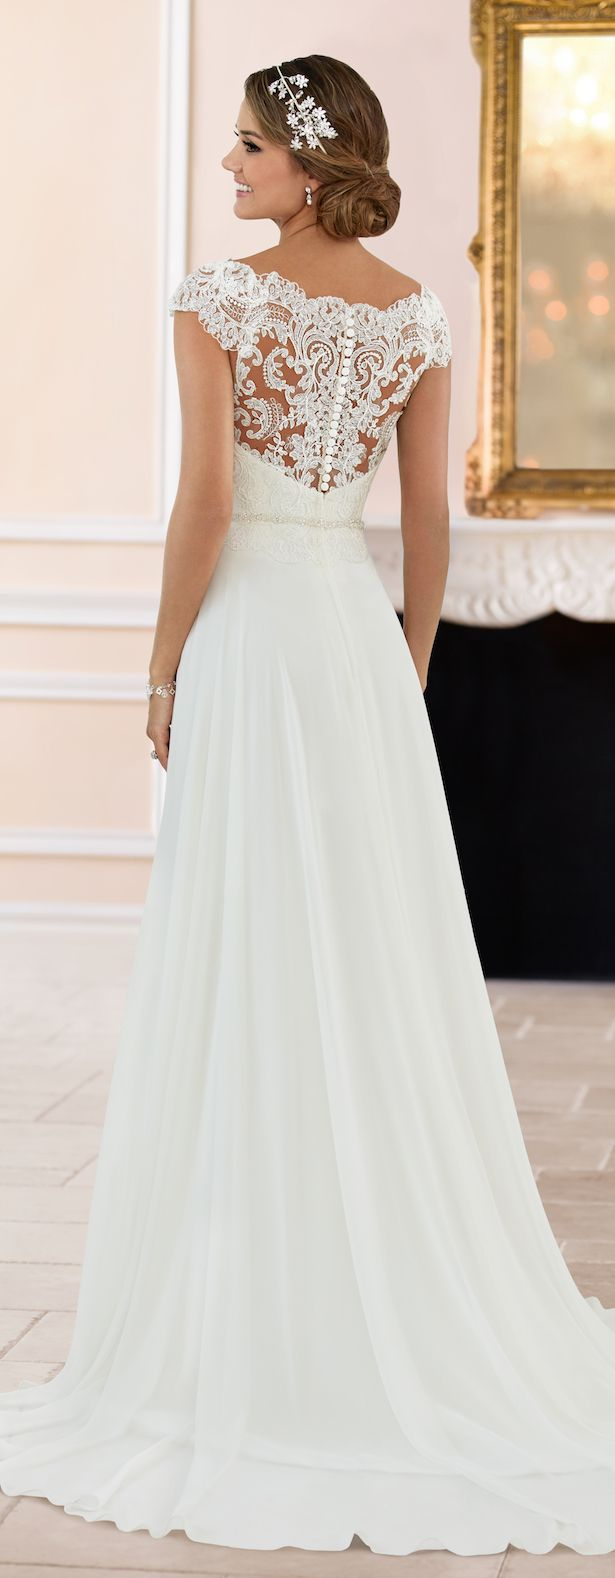 Best 25 wedding dress styles ideas on pinterest dress for Wedding dress cuts